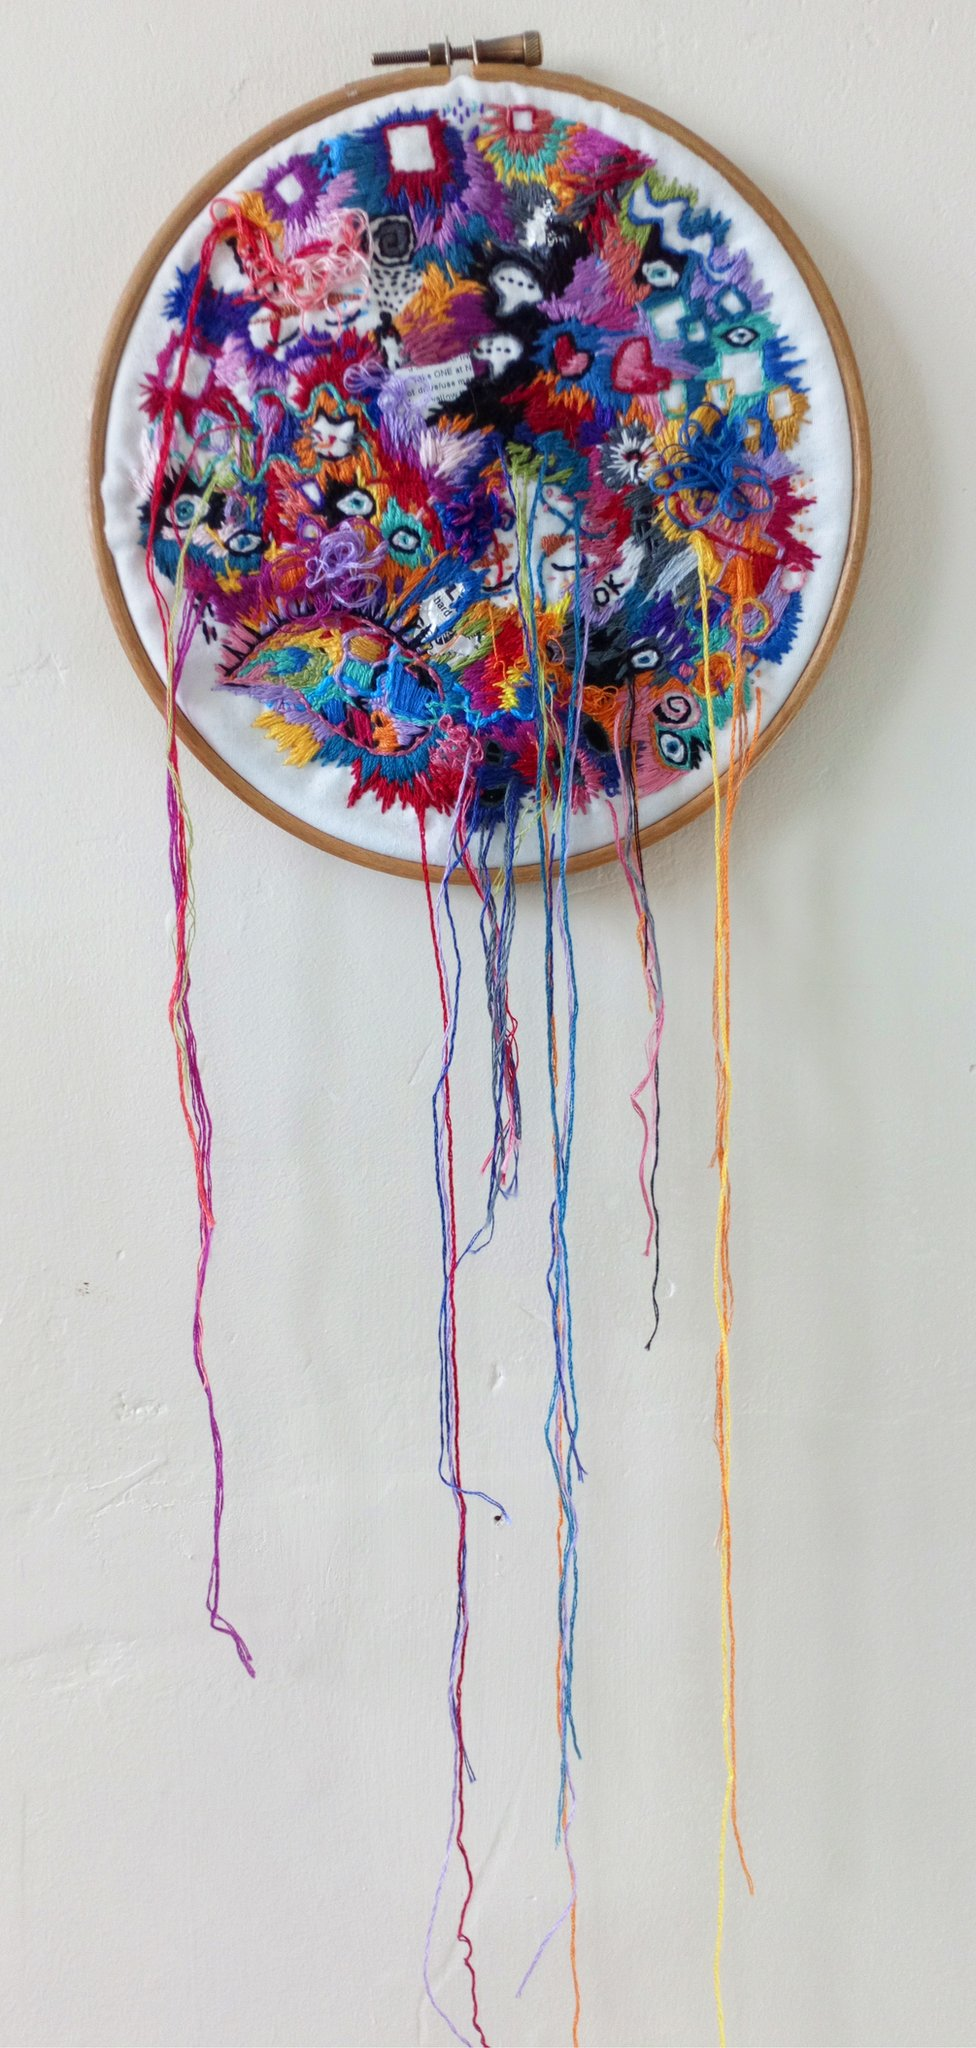 Hand sewn embroidery piece